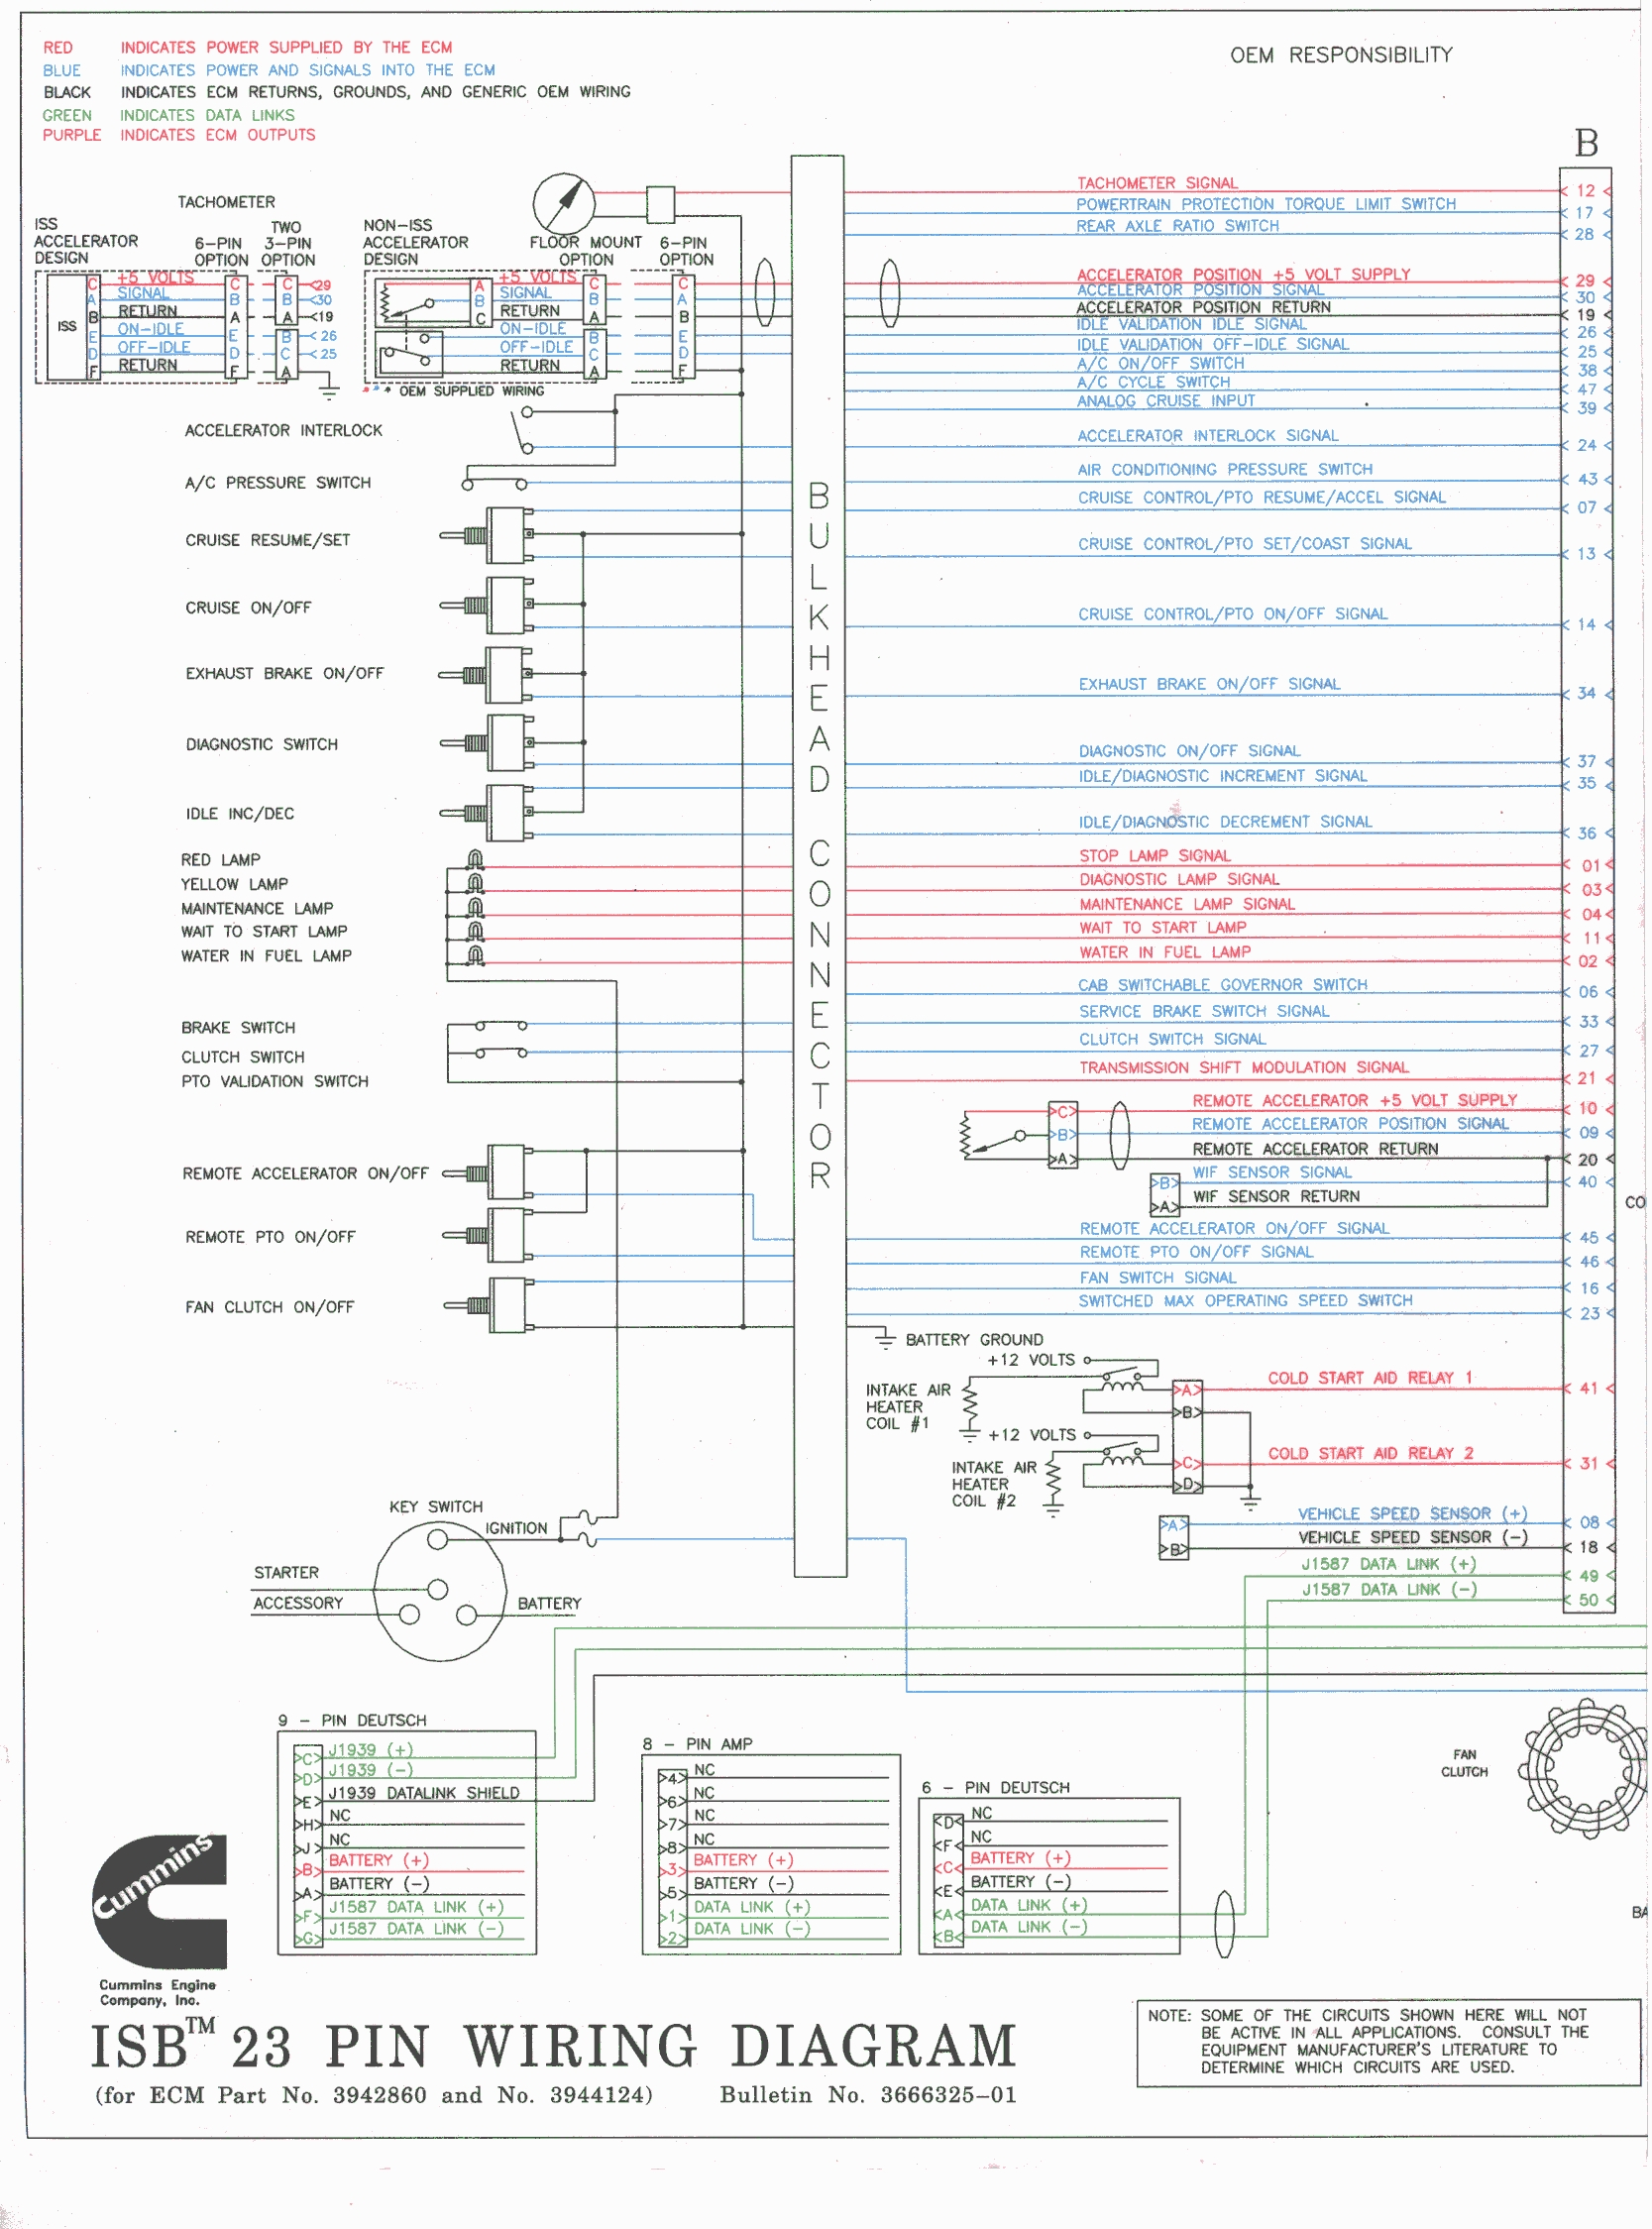 cummins ecm wiring diagram Download-cummins ecm wiring diagram Download Cummins Diesel Engine Diagram New Apps Wiring Diesel Bombers 2 5-n